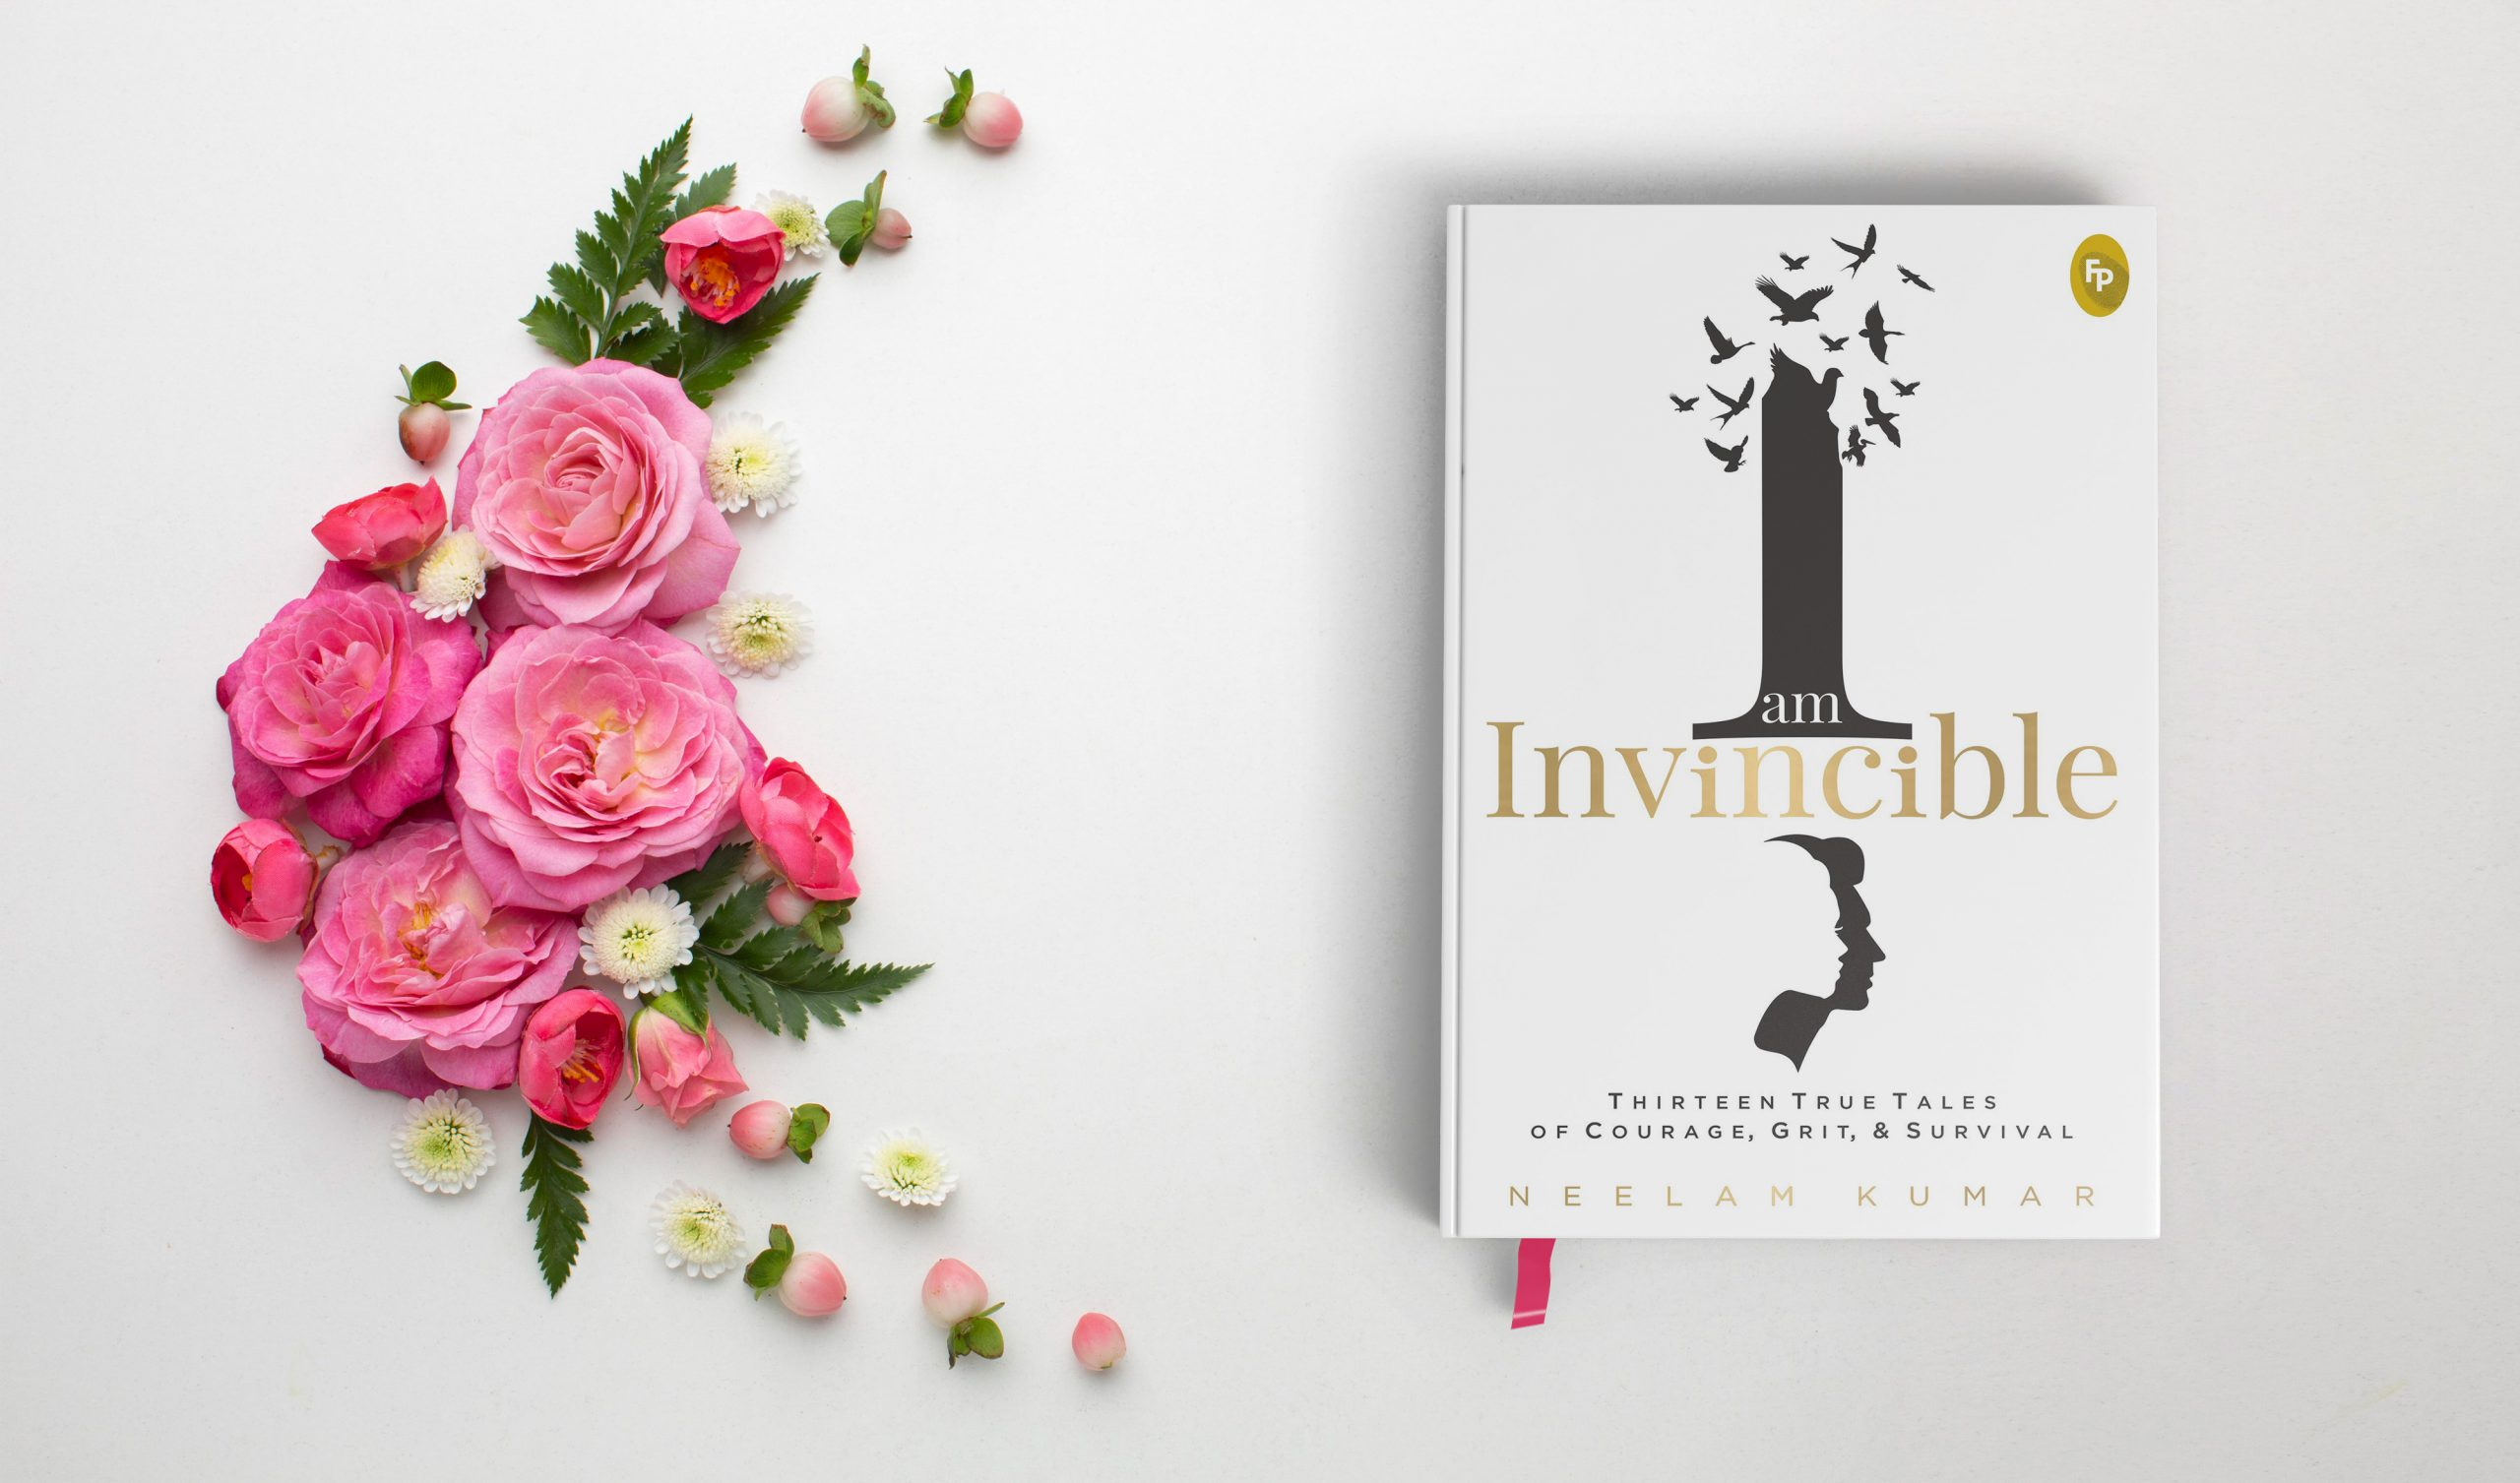 Book Review - I Am Invincible by Neelam Kumar